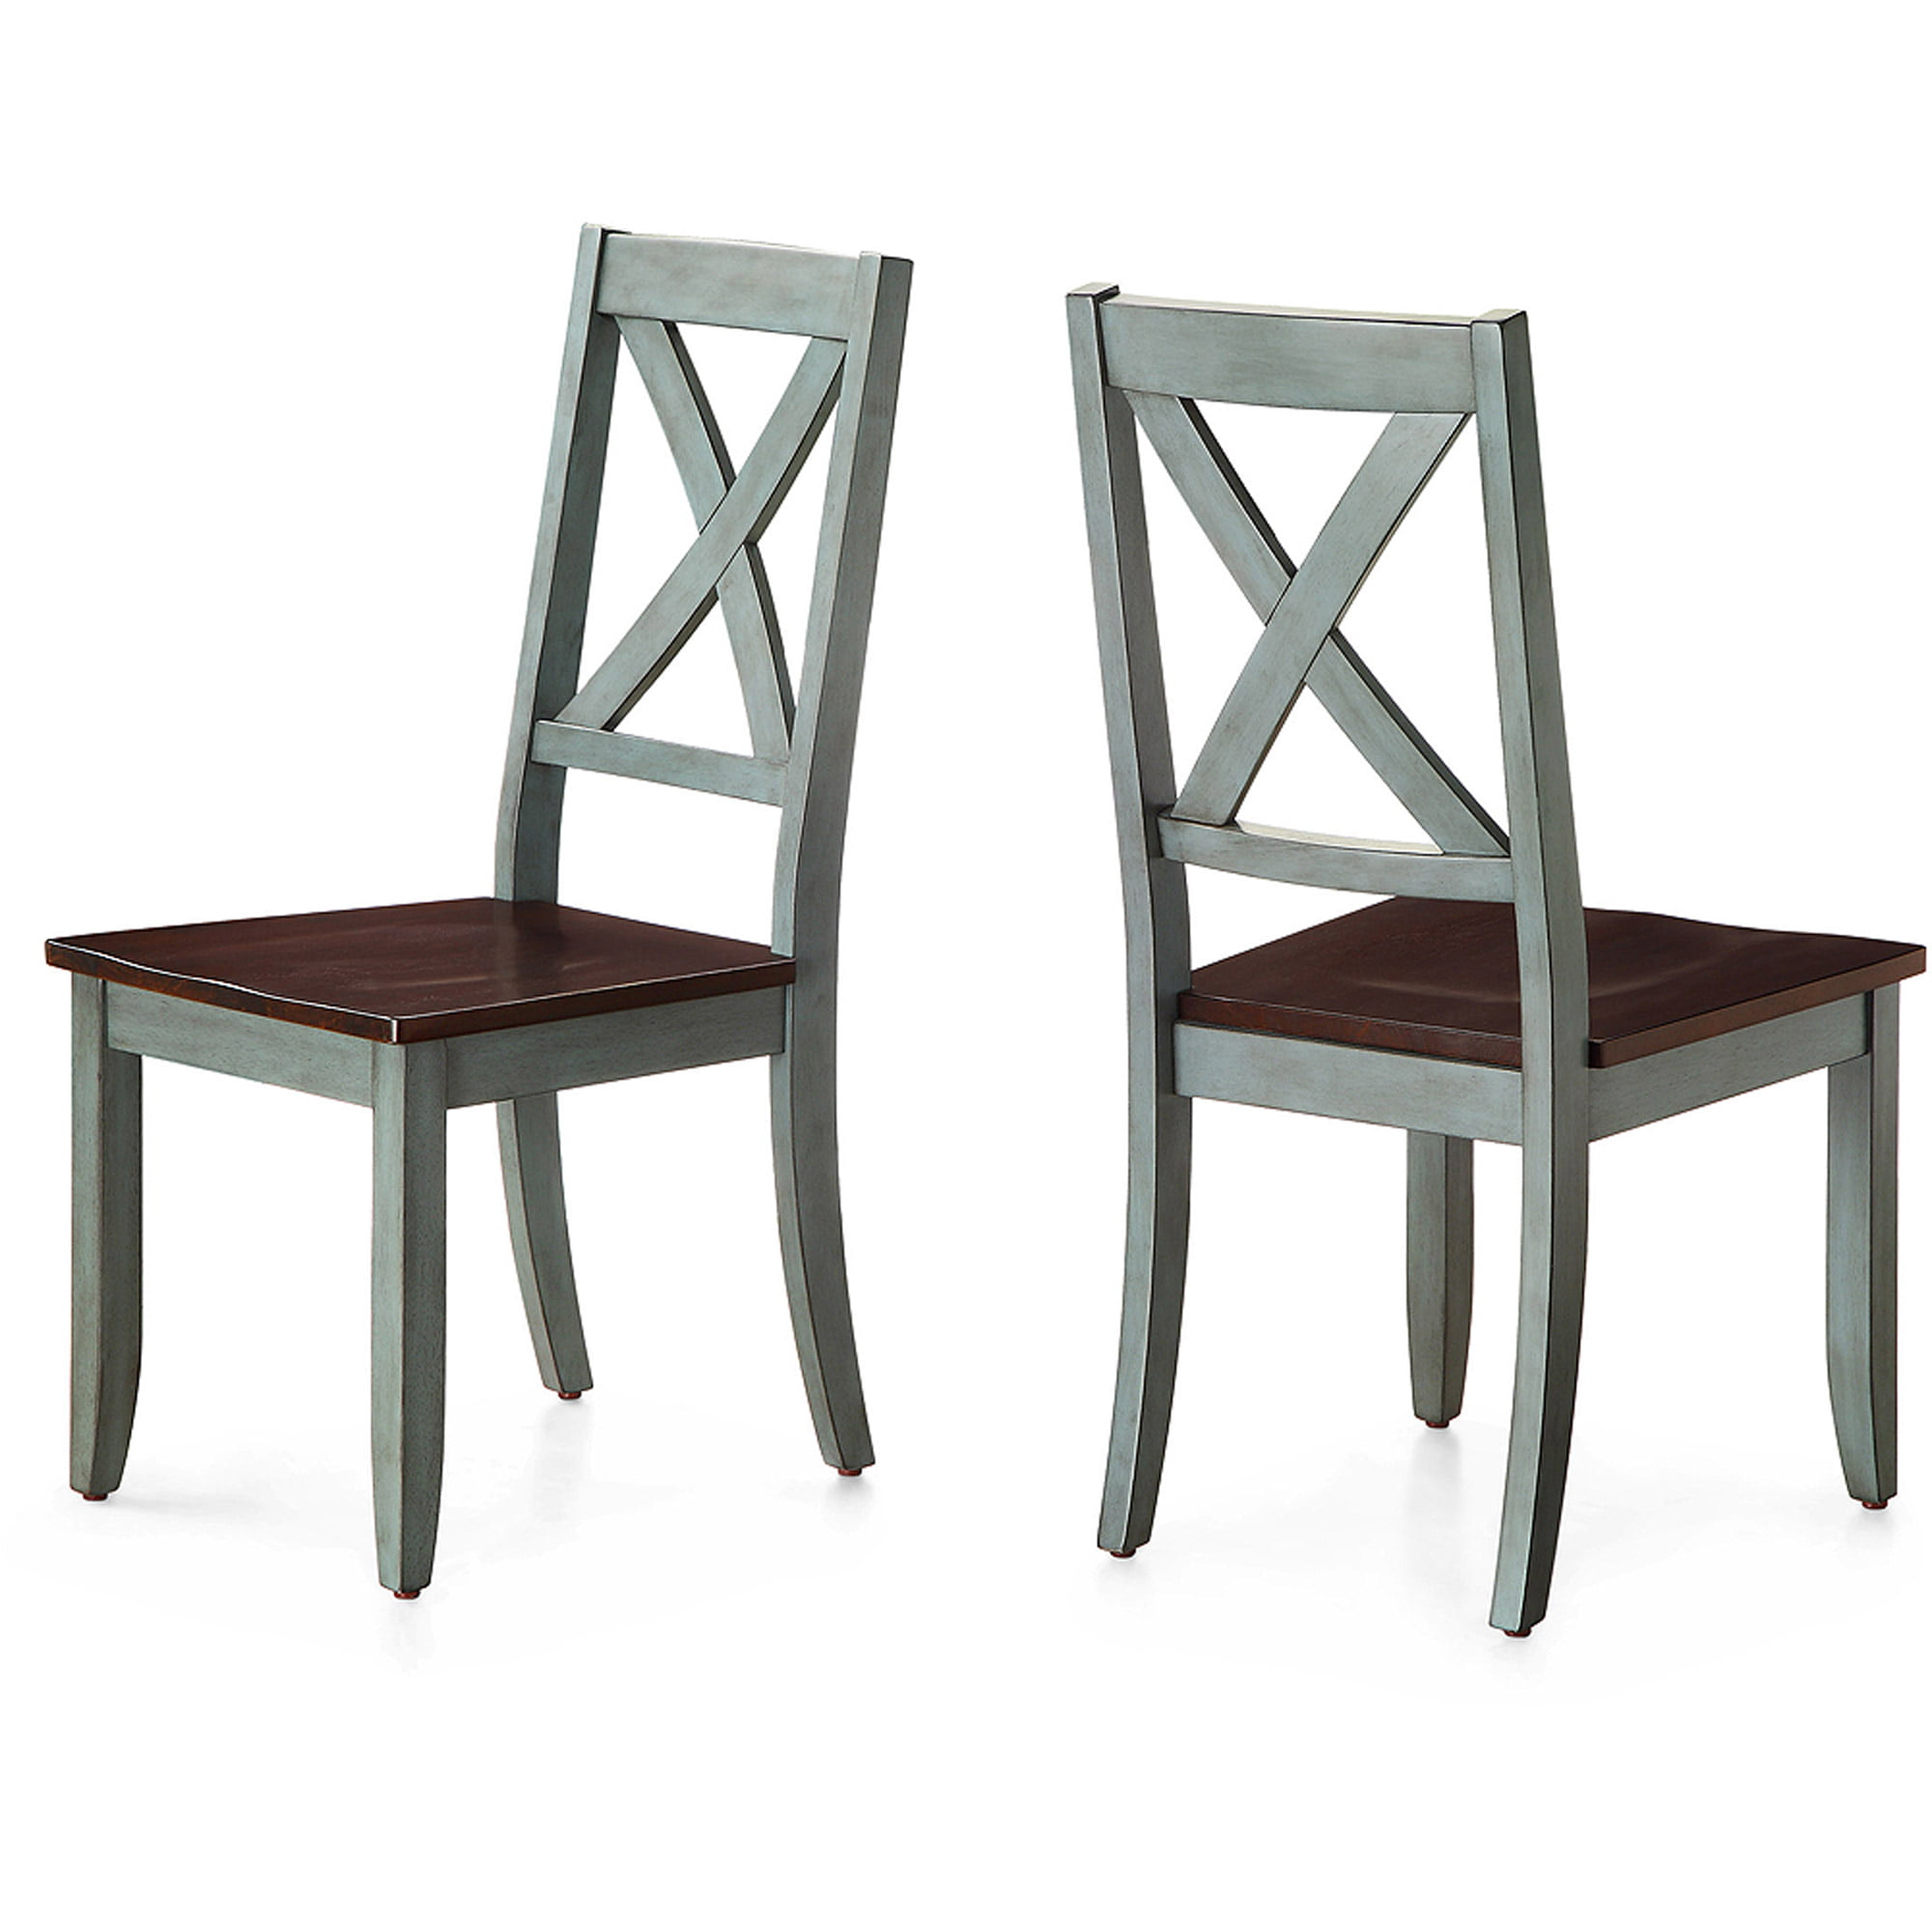 Better Homes and Gardens Maddox Crossing Dining Chair, Blue, Set of 2 by Better Homes and Gardens